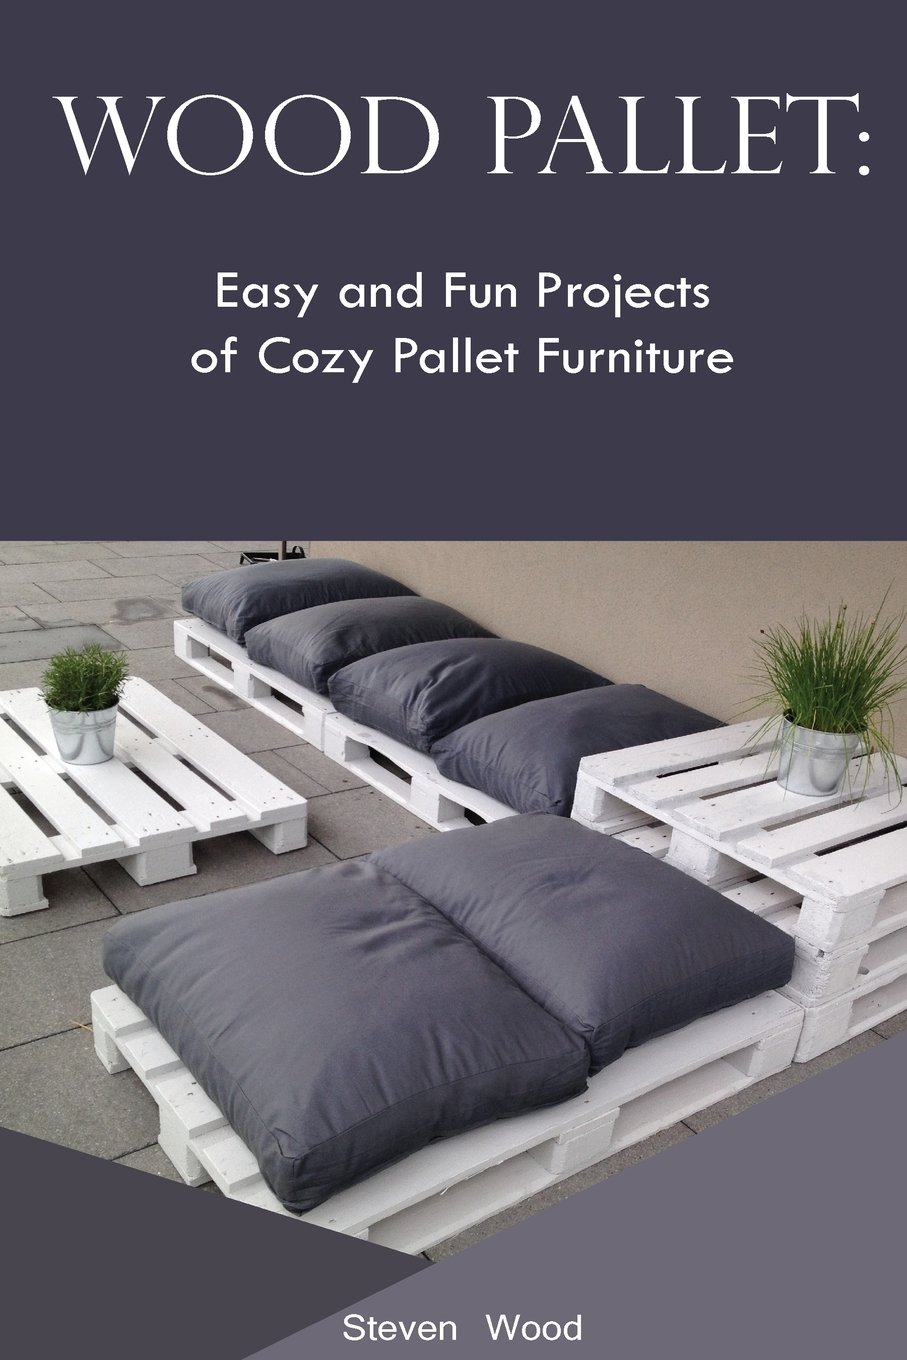 Wood Pallet: Easy and Fun Projects of Cozy Pallet Furniture: (Indoor and Outdoor Furniture) (pallete furniture)